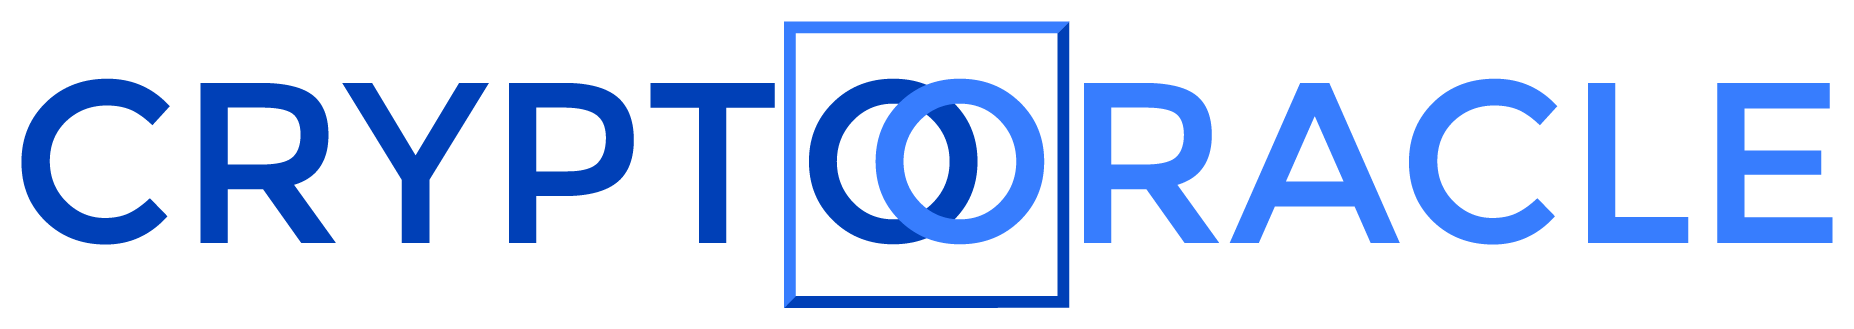 crypto_oracle_logo_blue_horizontal (2).png